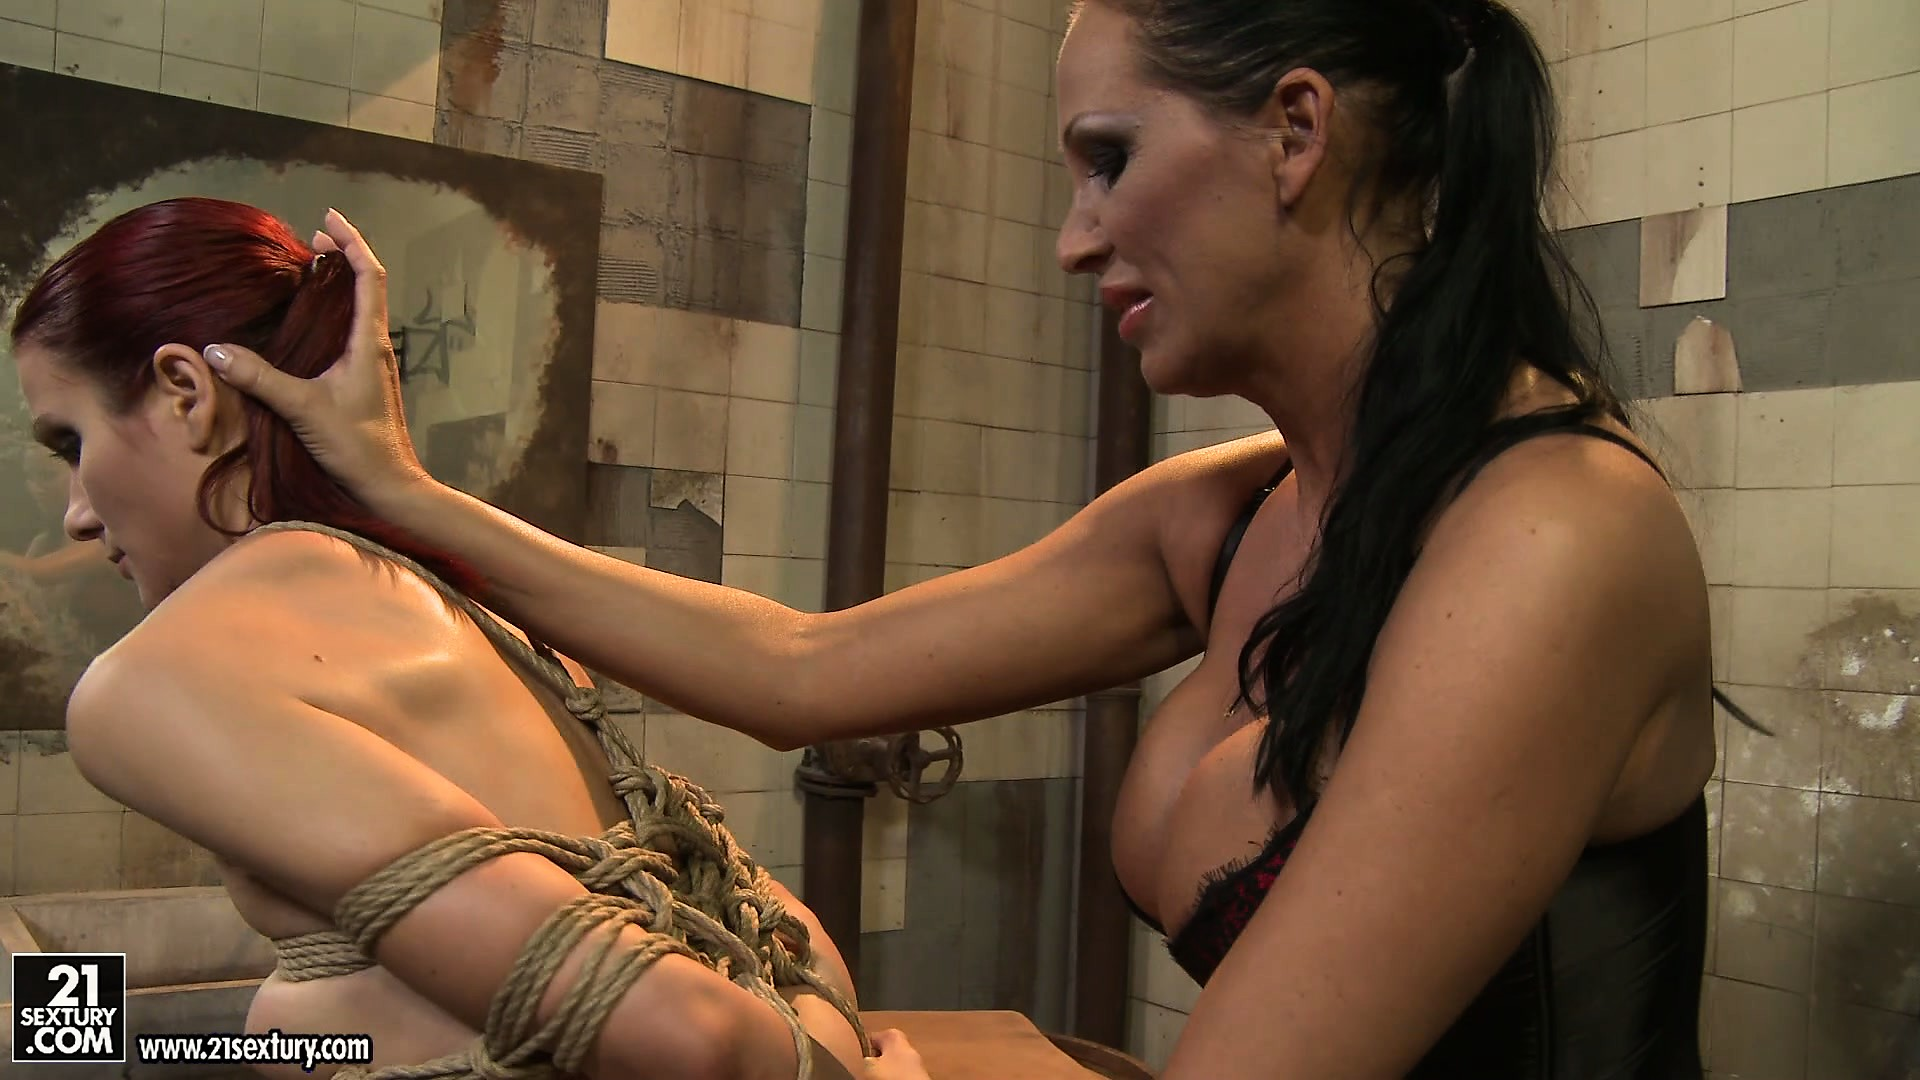 Porn Tube of Mandy's Strict Rules Should Be Followed And Only Then Lucy Will Get Freedom